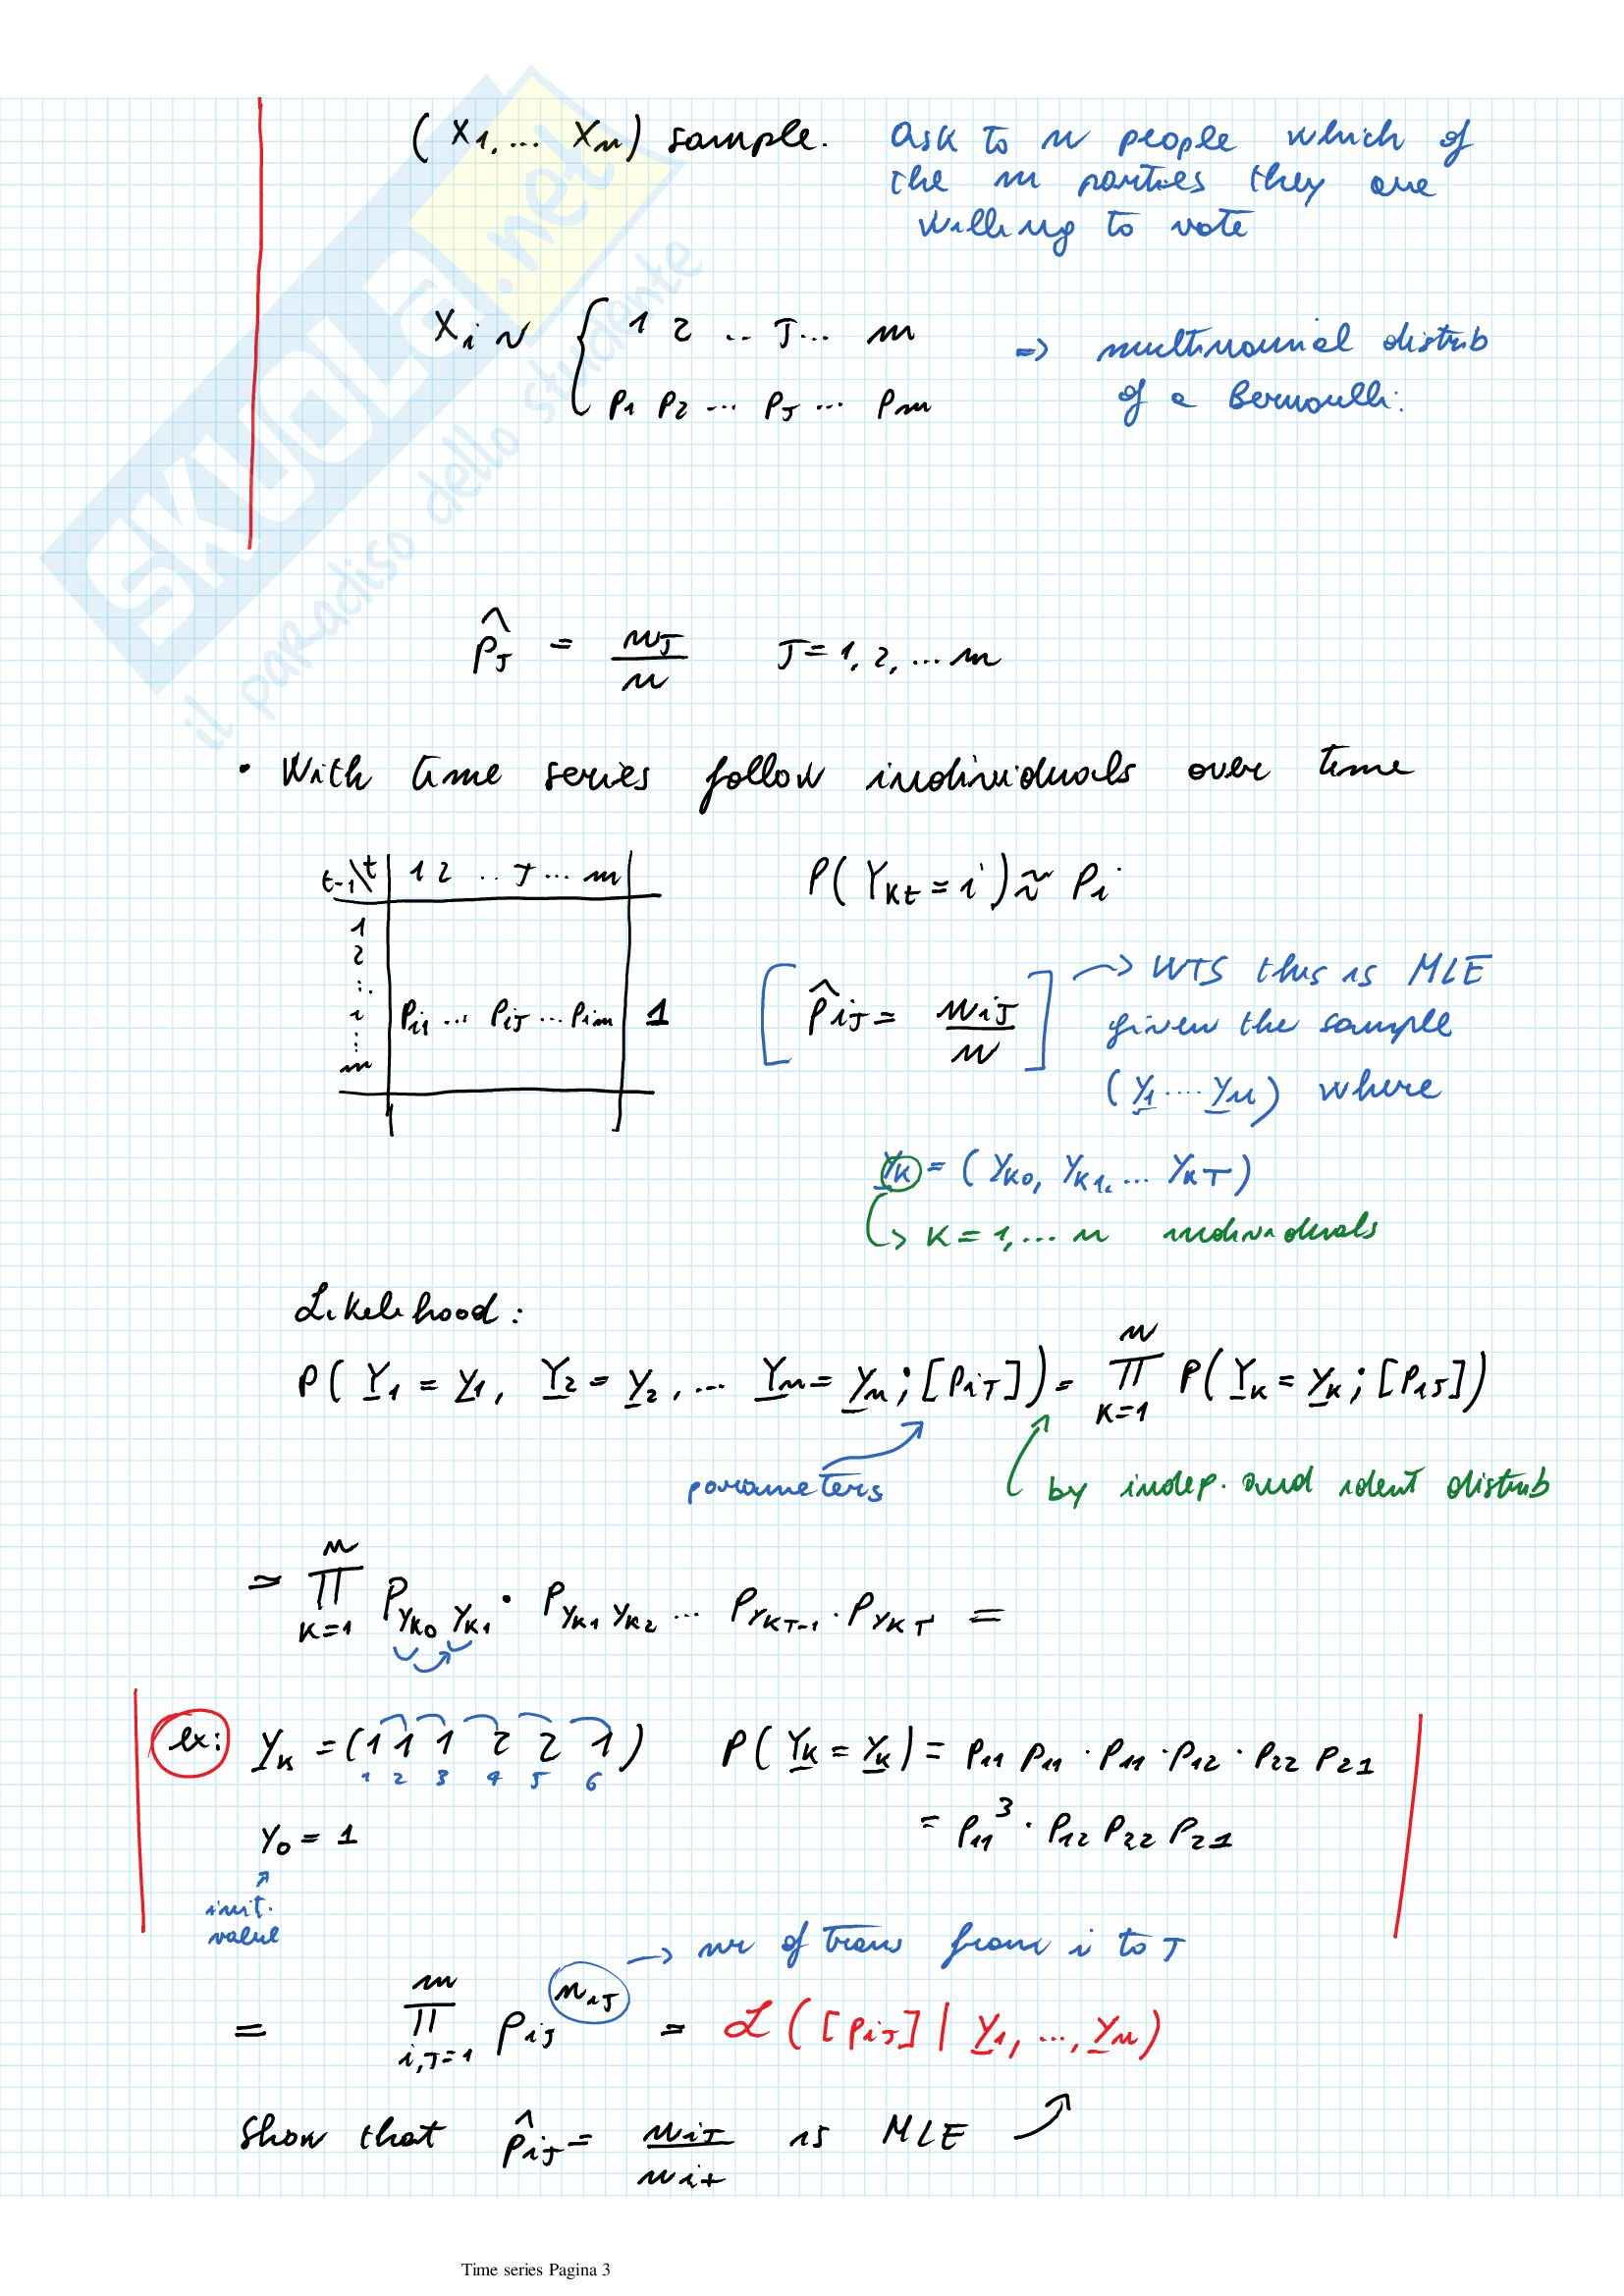 Time series analysis of economic and financial data - Appunti Pag. 26